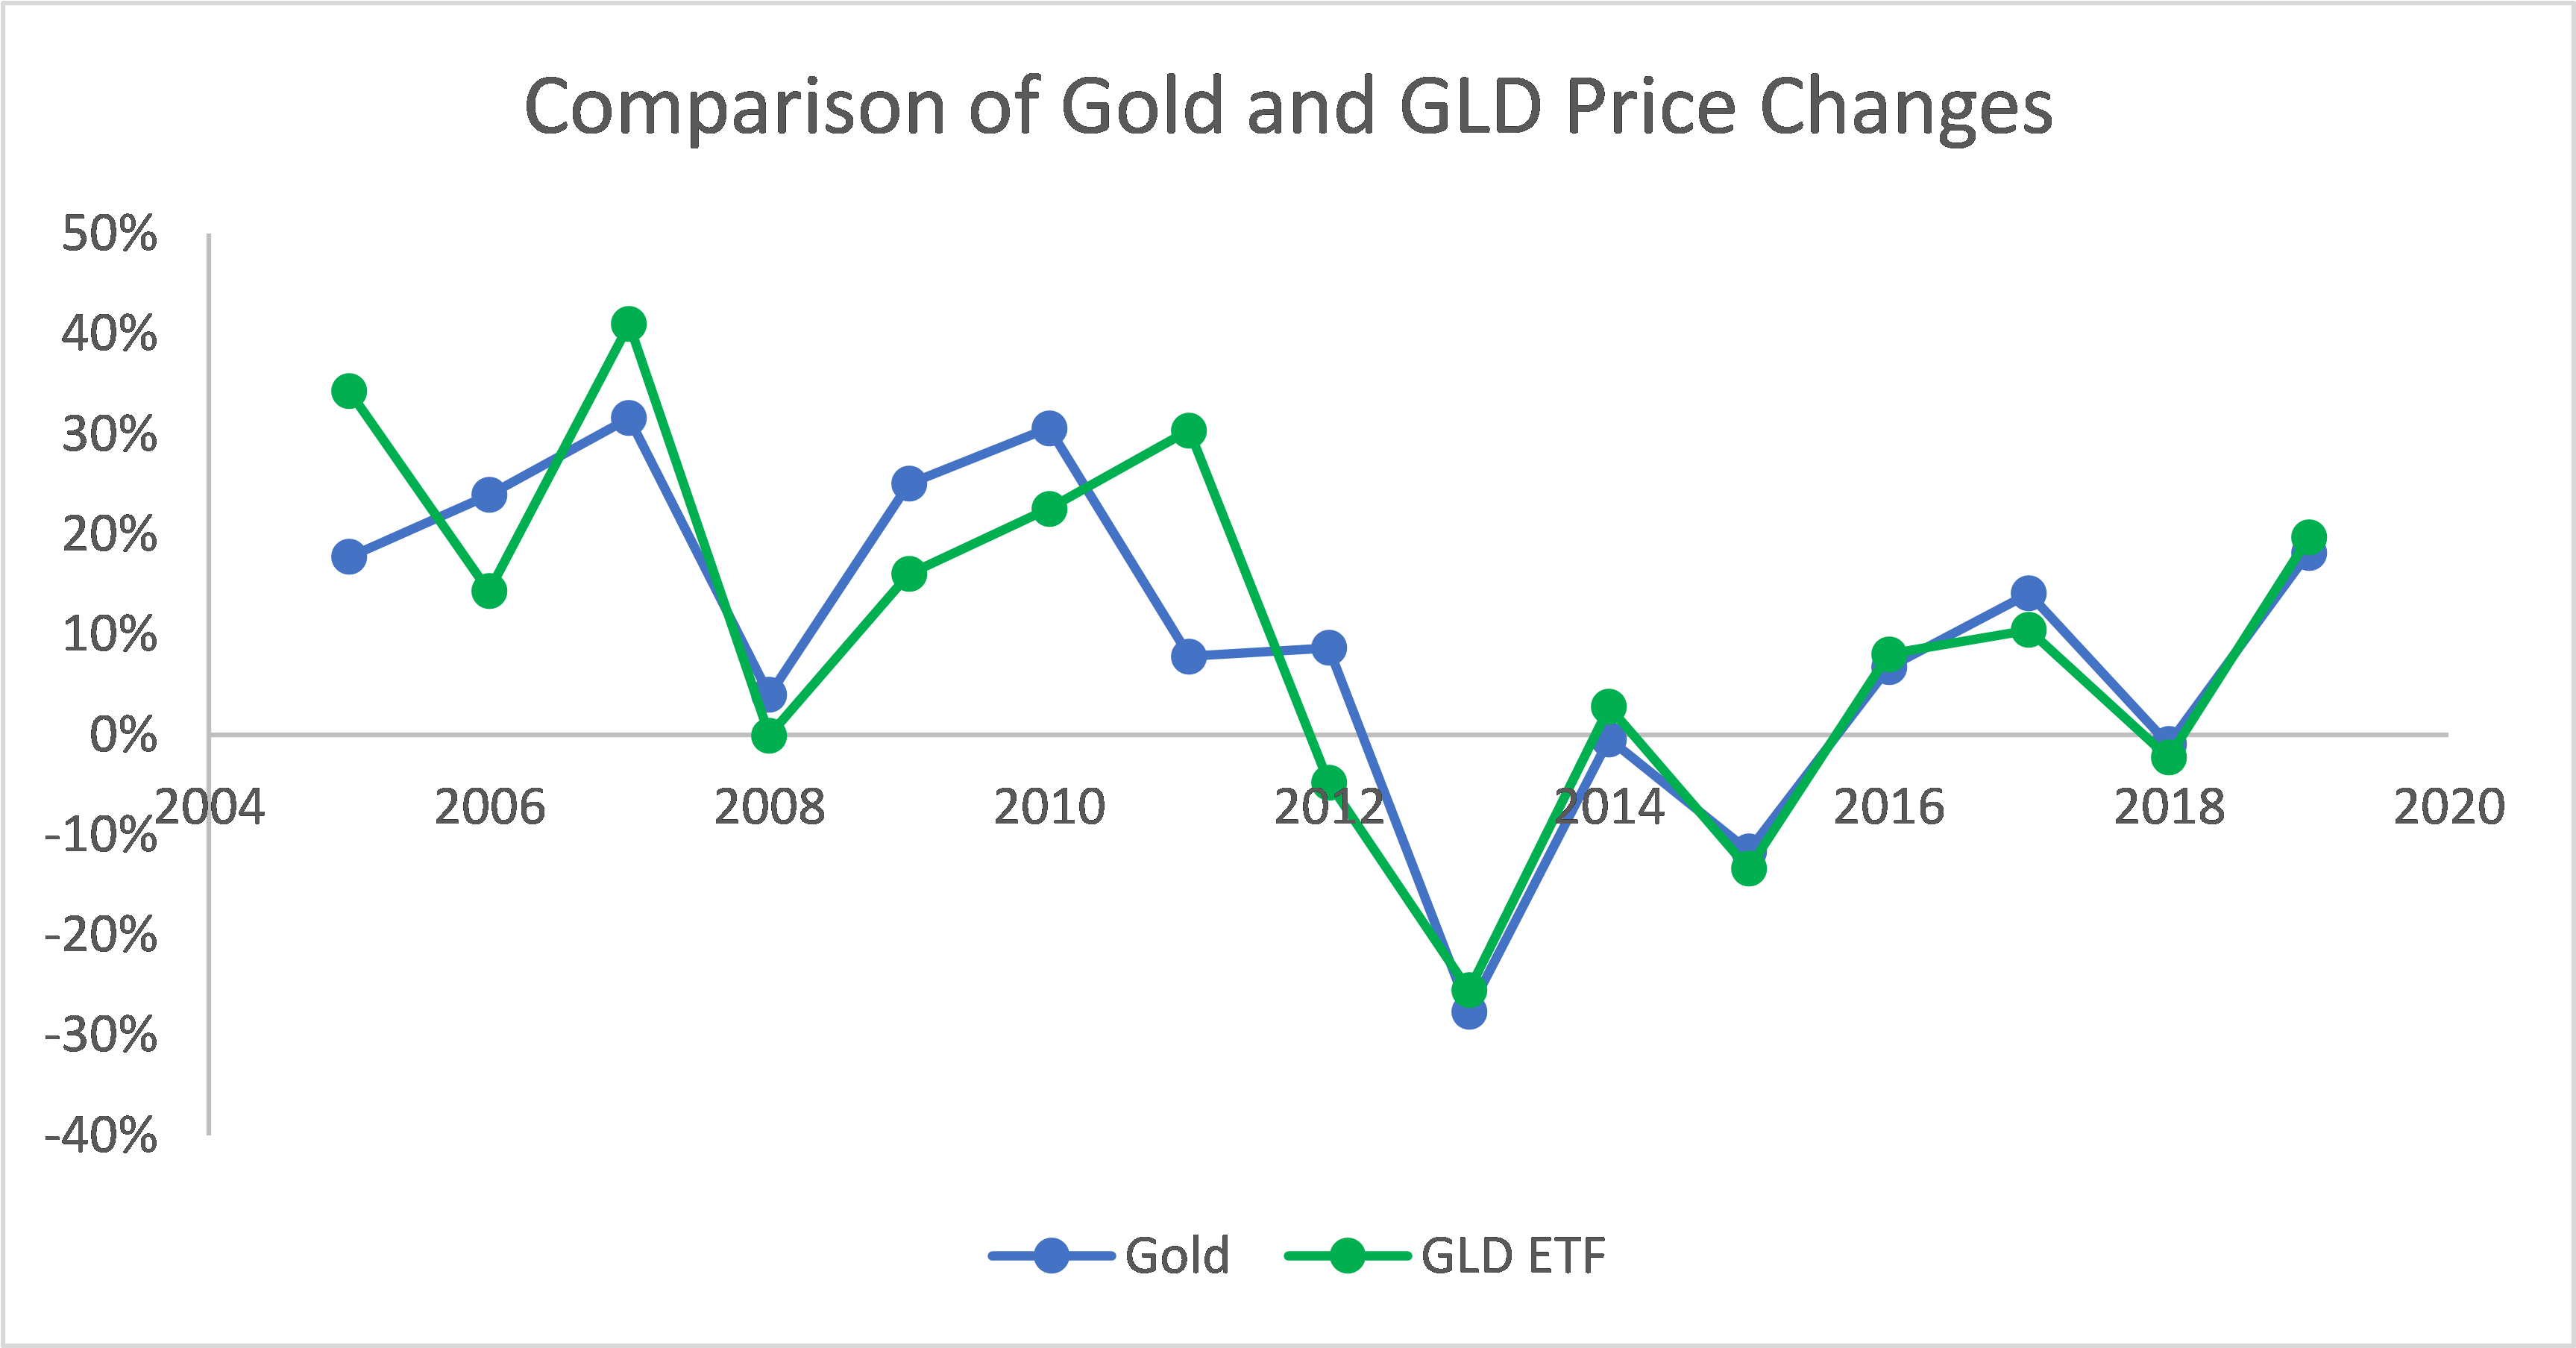 very close match between gold and GLD ETF price changes from 2005 to 2019